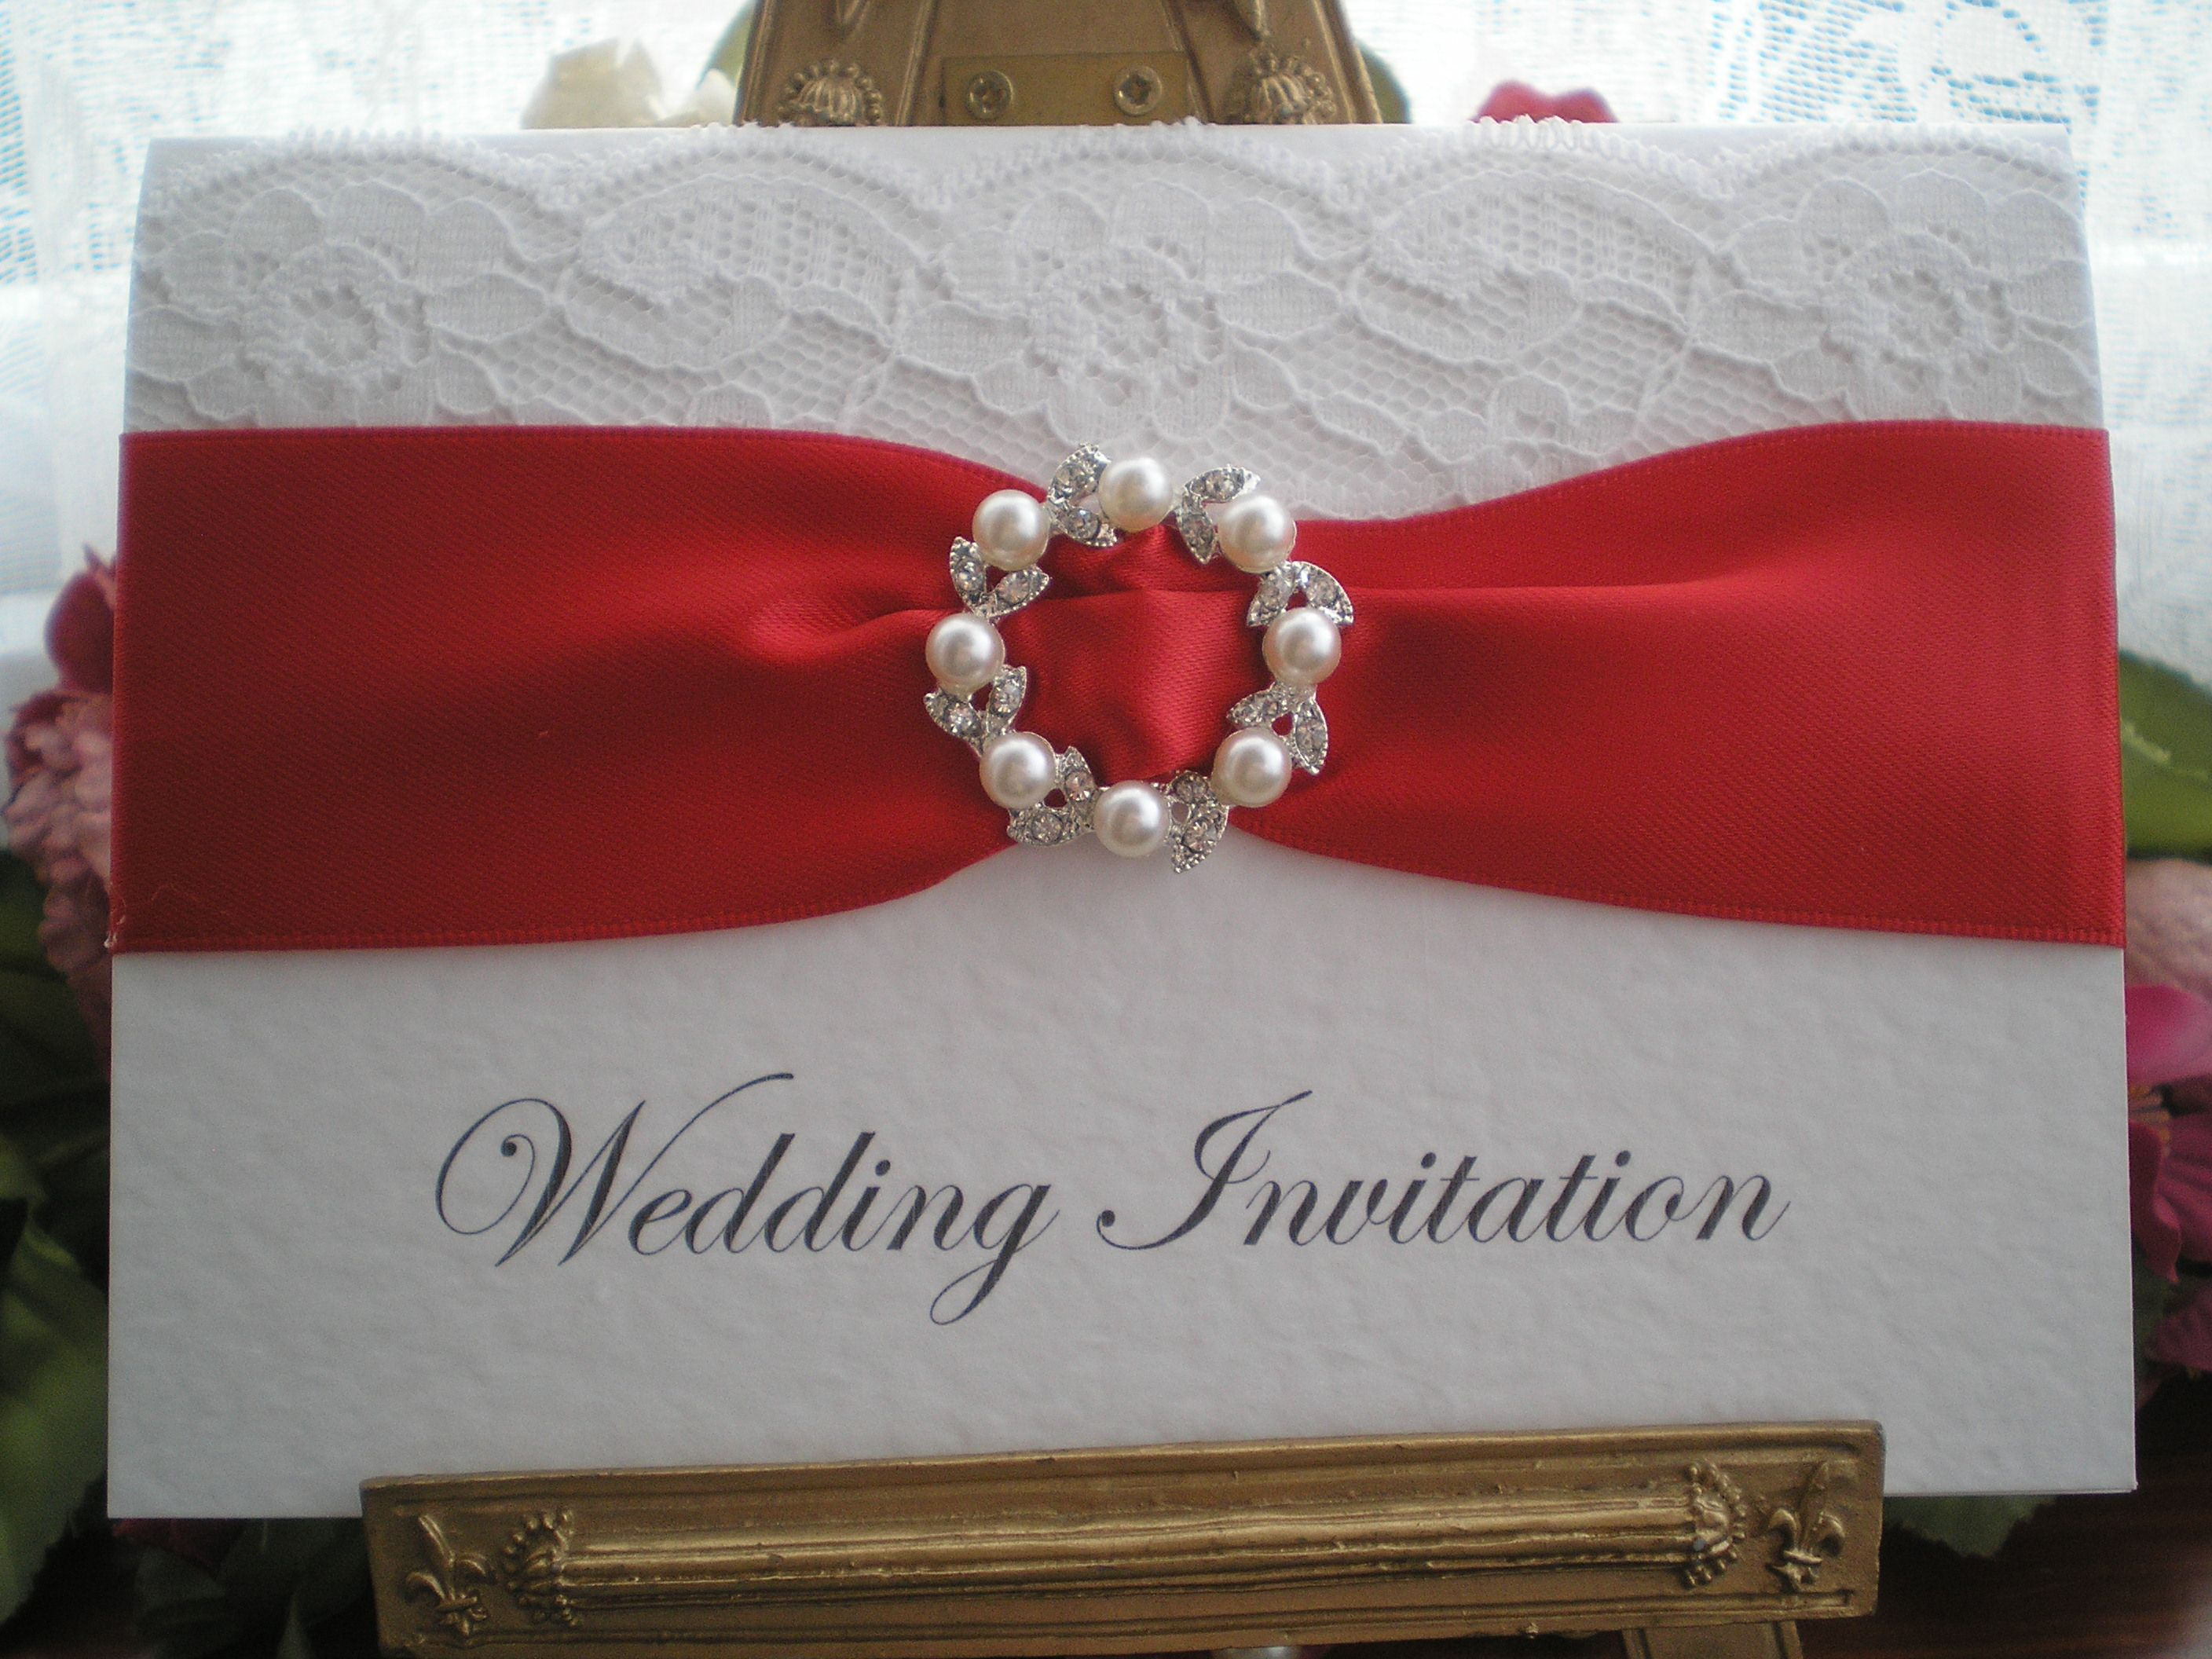 Afficher l\'image d\'origine | RED WEDDING DECORATION | Pinterest ...